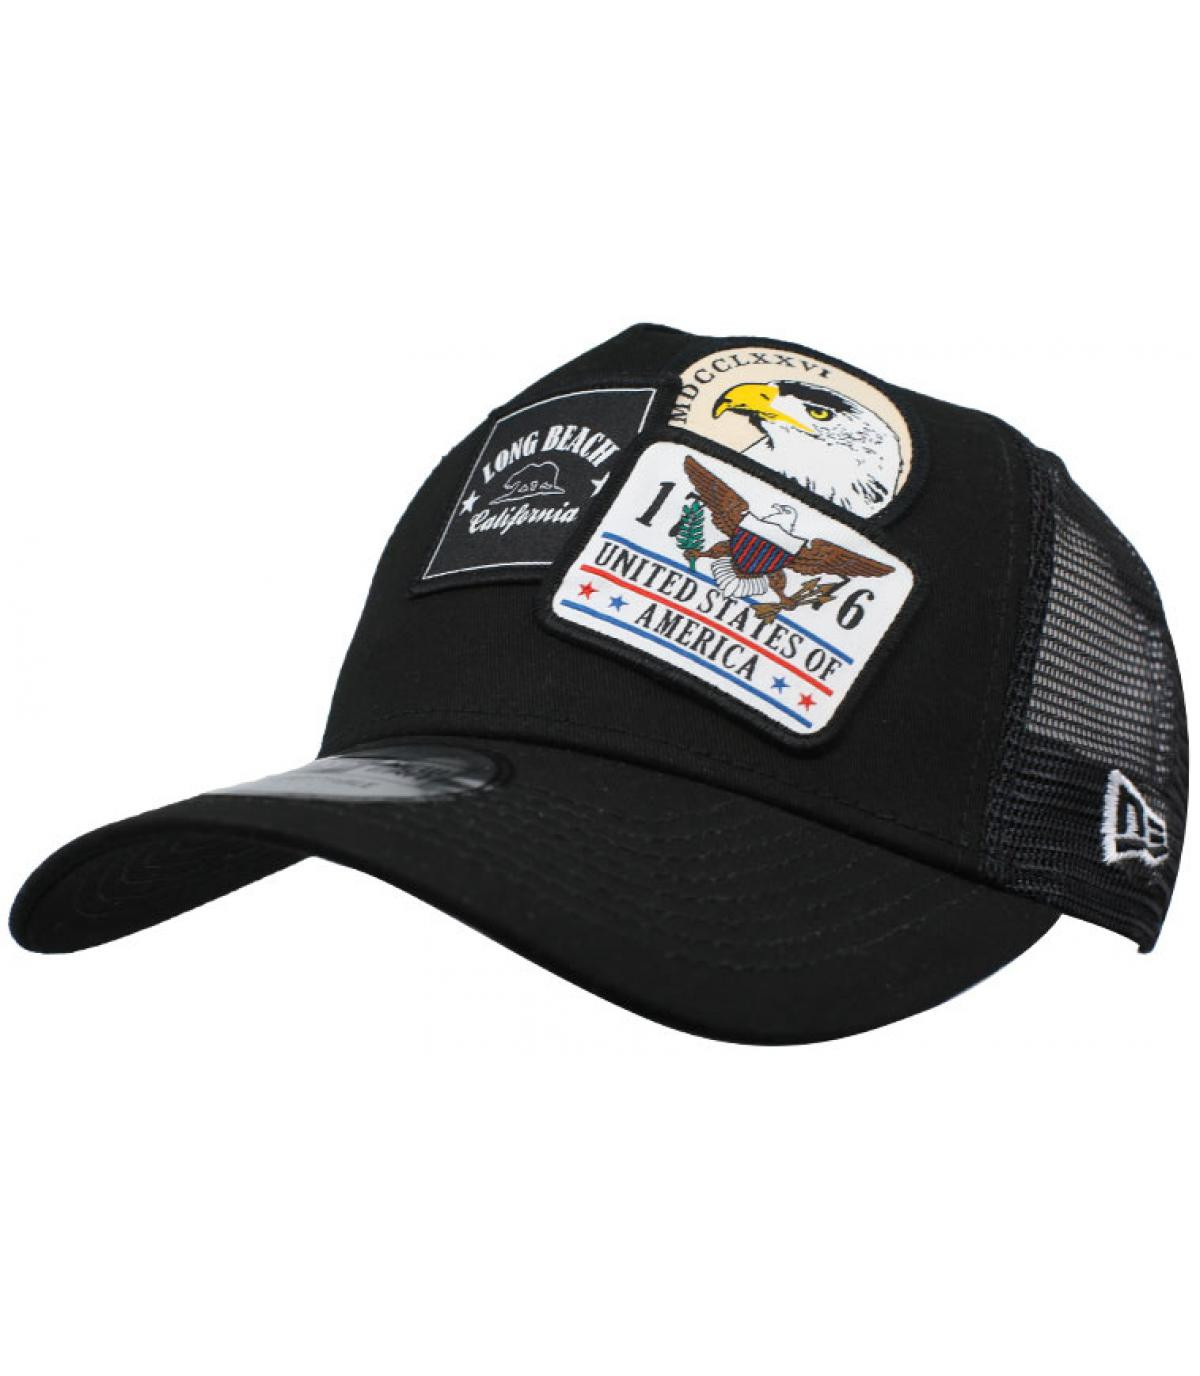 Details Trucker Overlapping patch black - afbeeling 1